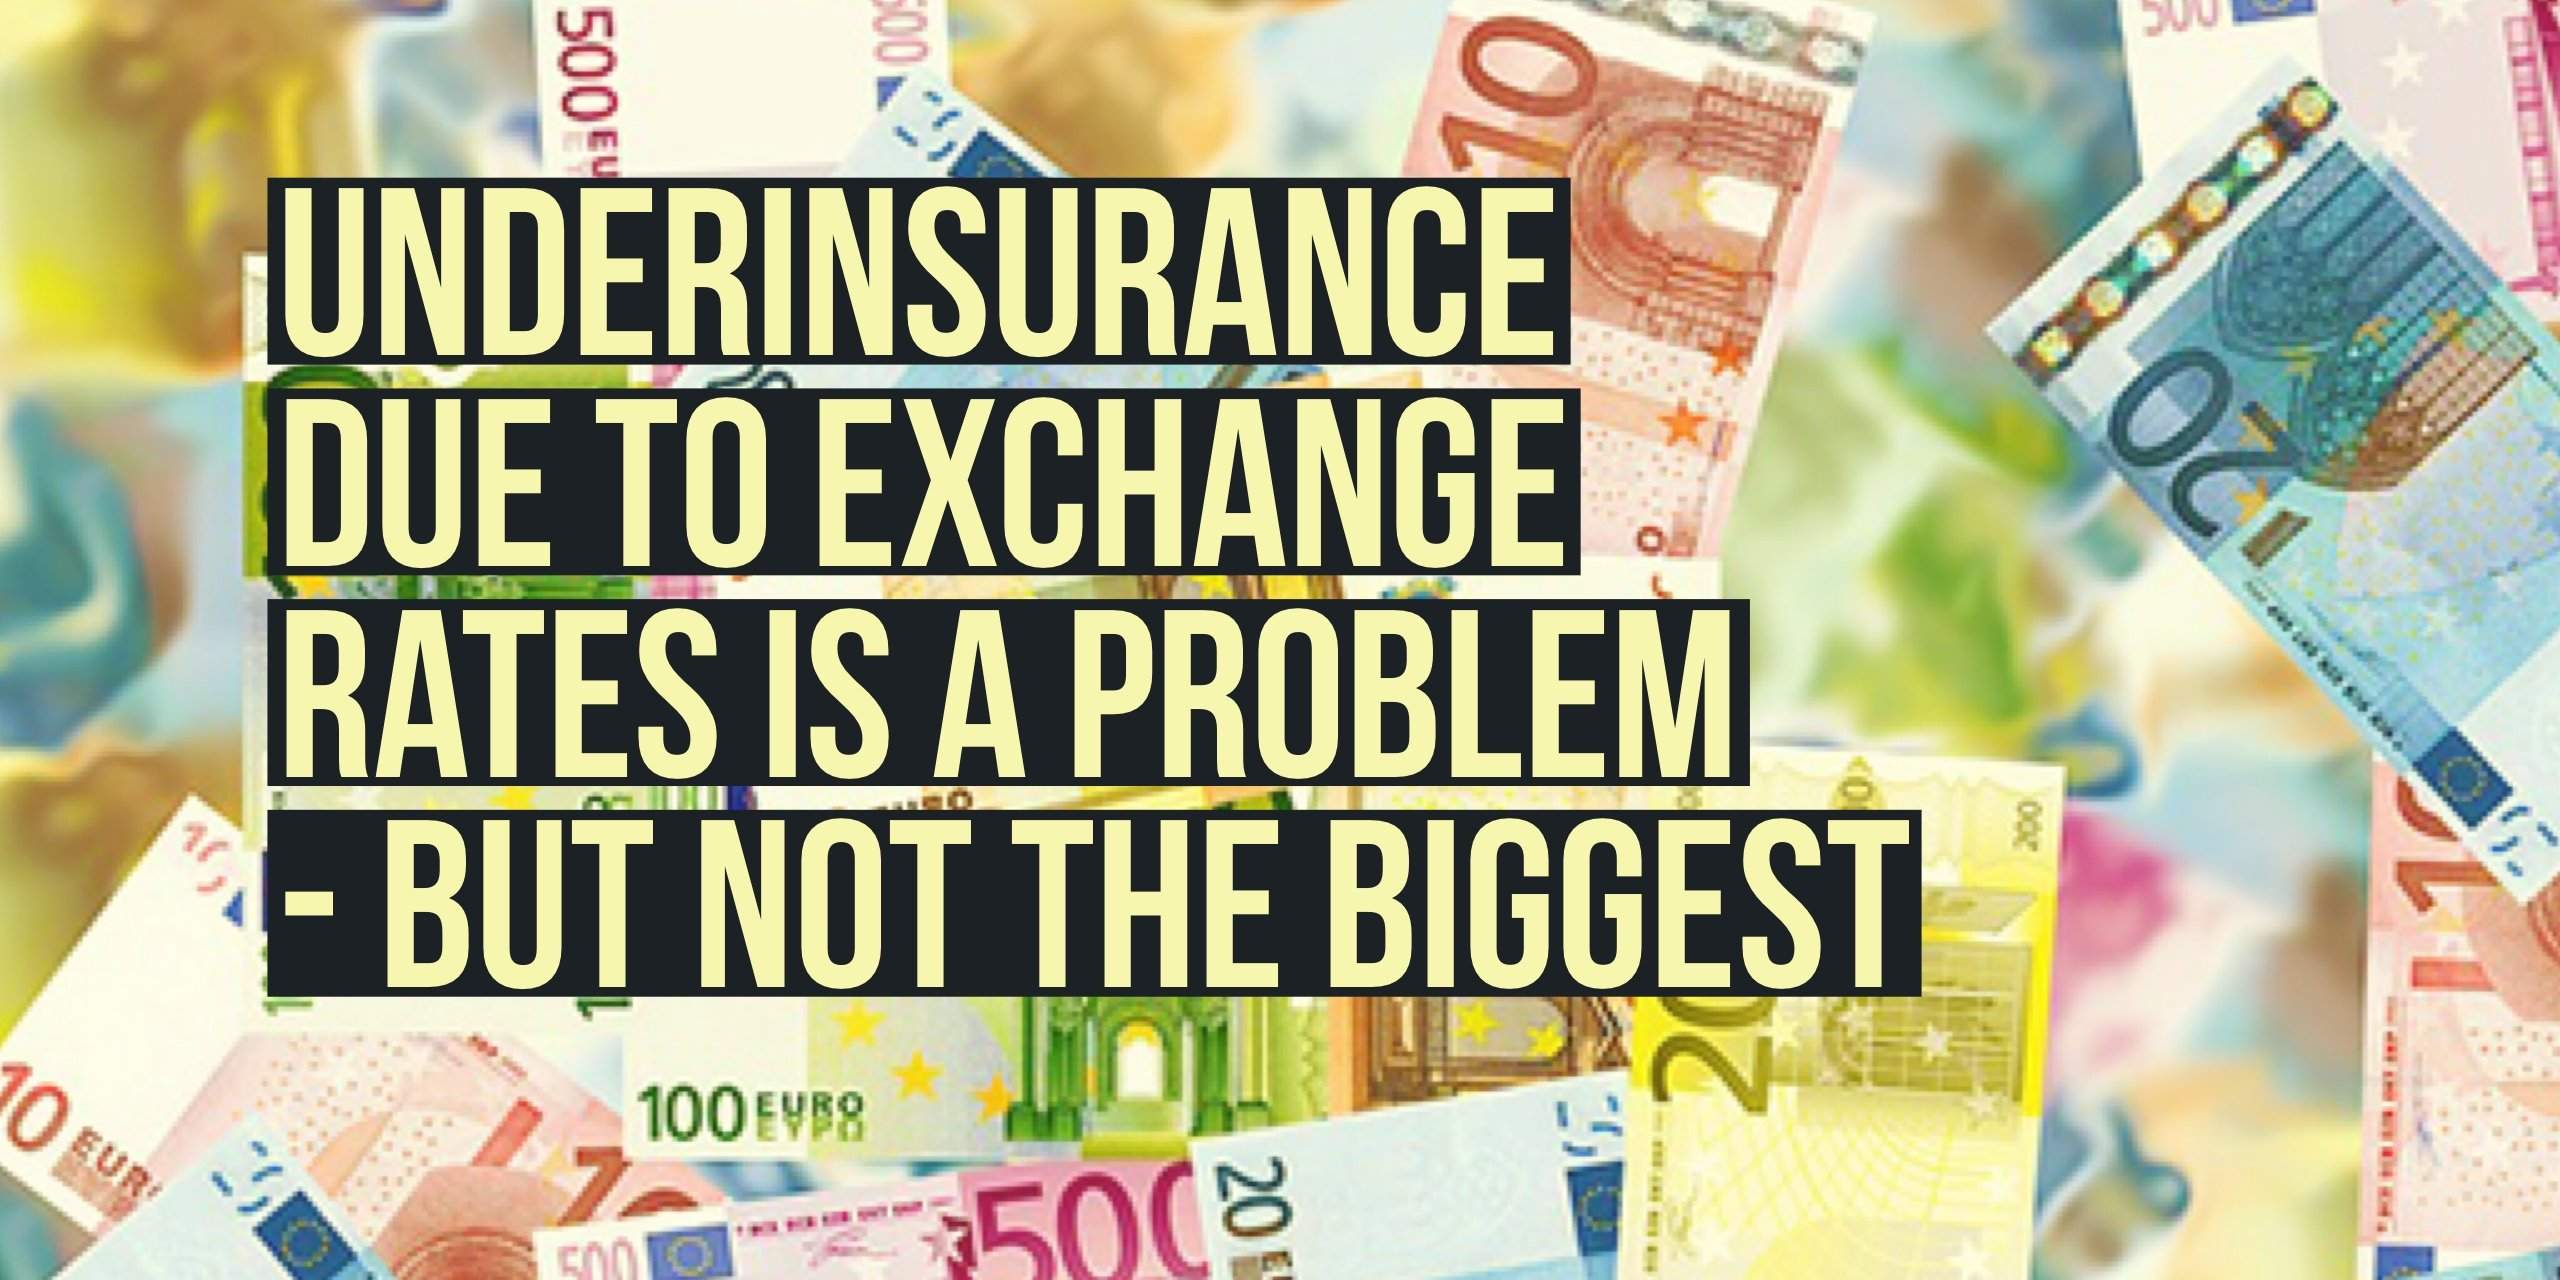 Underinsurance due to exchange rates is a problem